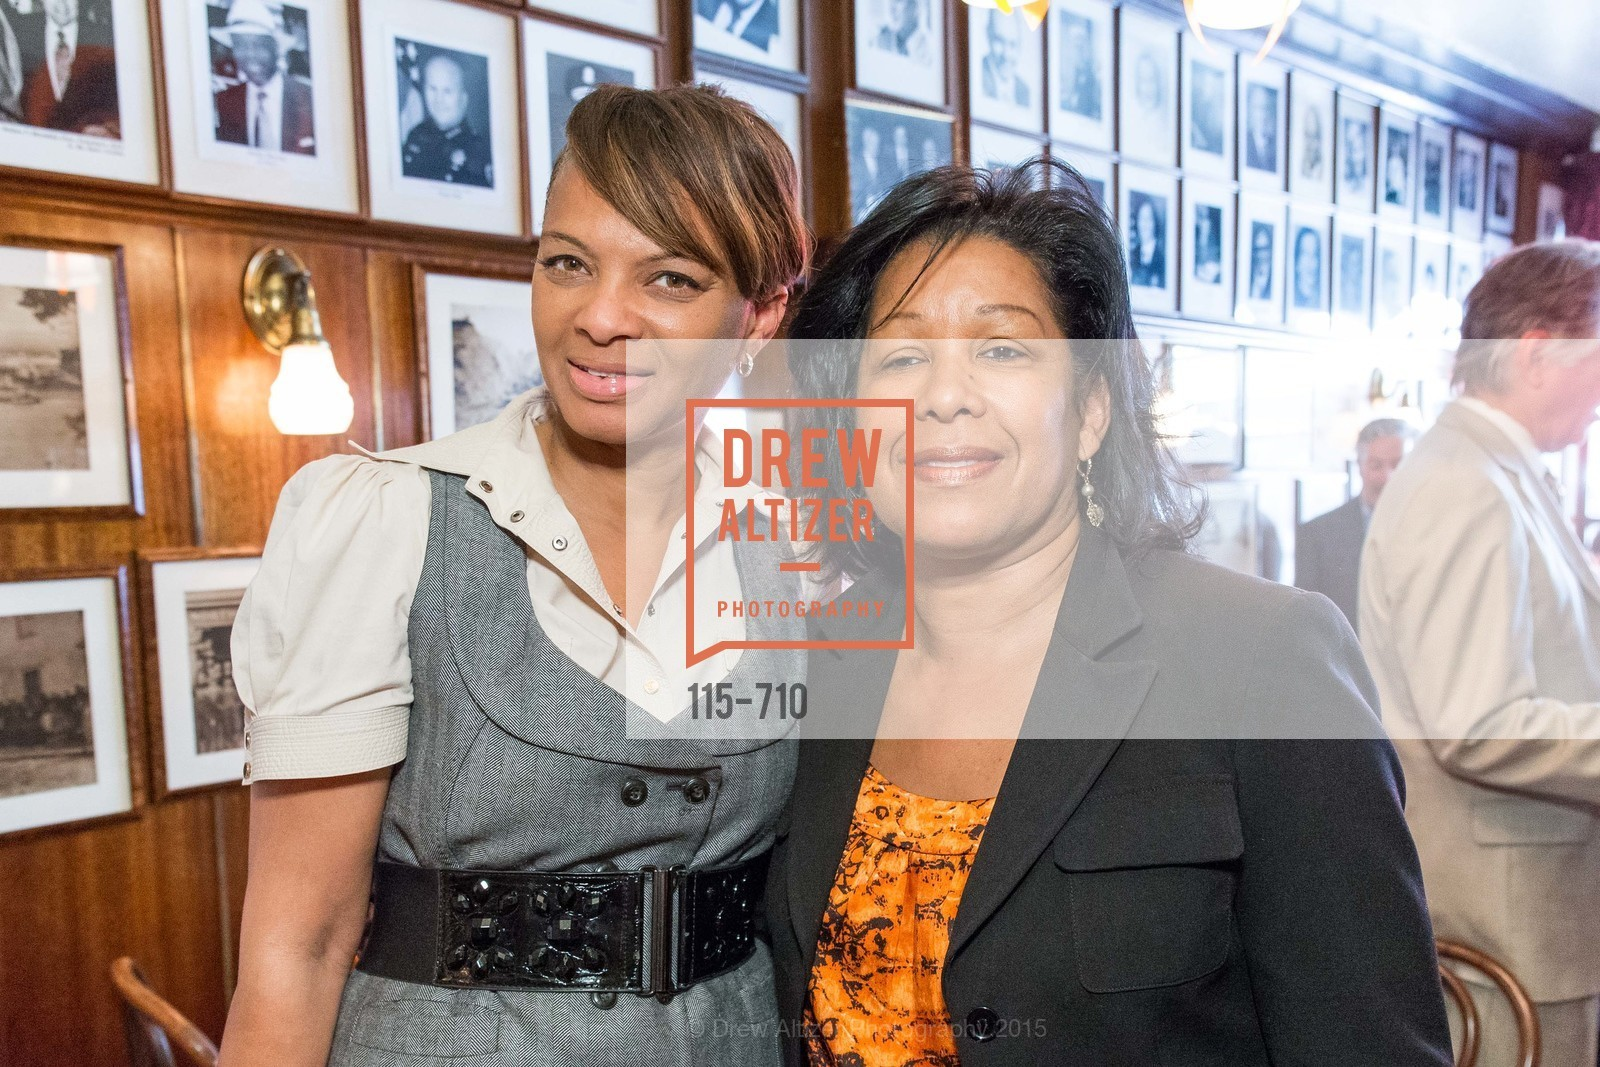 Shonda Scott, Kim Brandon, 3-RING LUNCH CELEBRATION Honoring RENEL BROOKS-MOON, US, June 8th, 2015,Drew Altizer, Drew Altizer Photography, full-service agency, private events, San Francisco photographer, photographer california